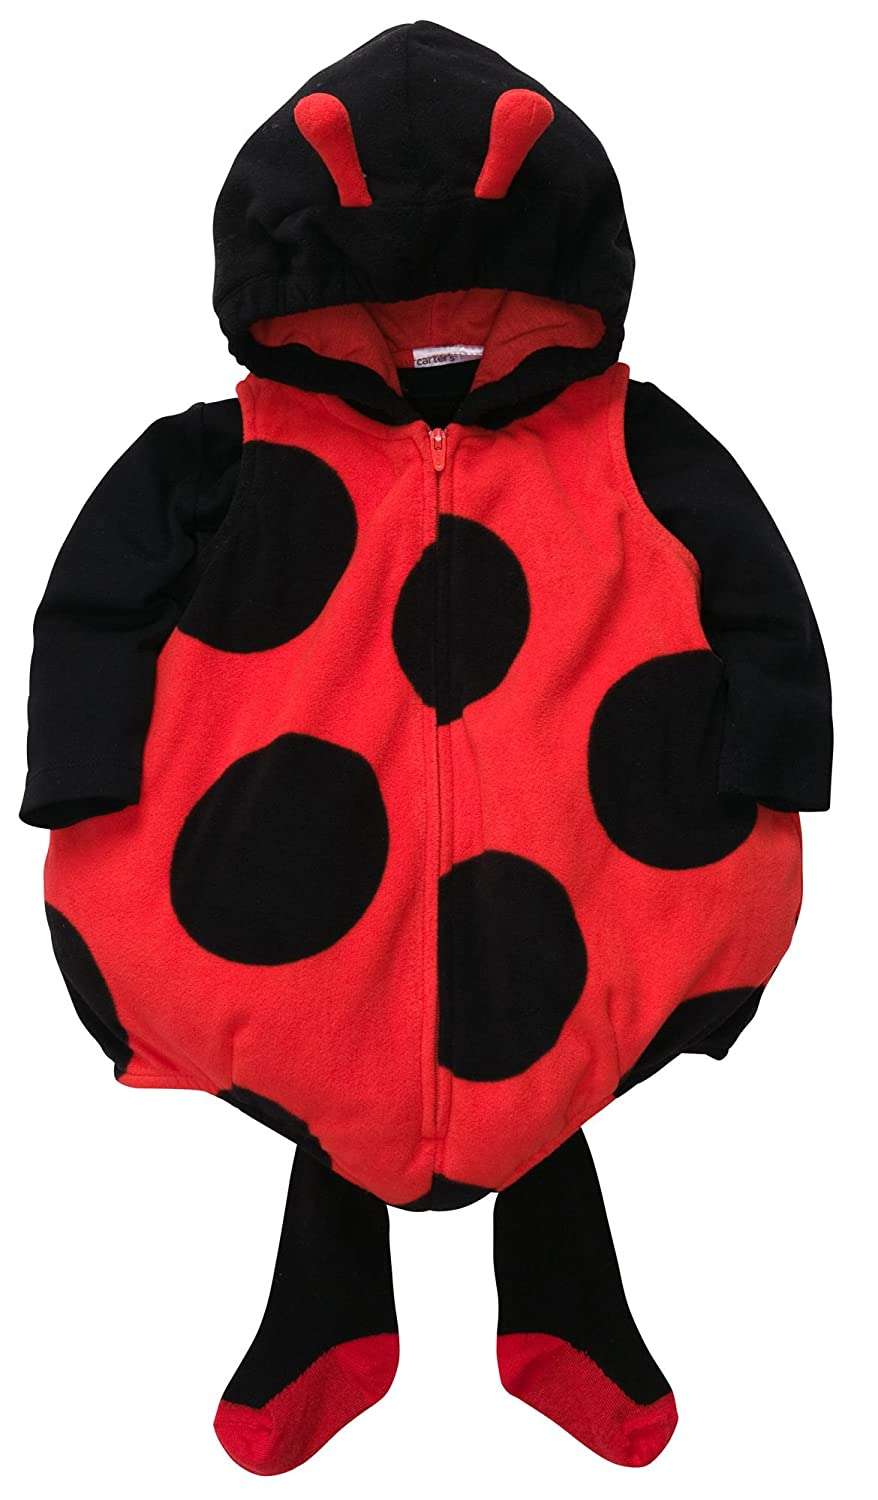 6ba45d580 Amazon.com: Carter's Costume - Ladybug- 24 Months: Baby